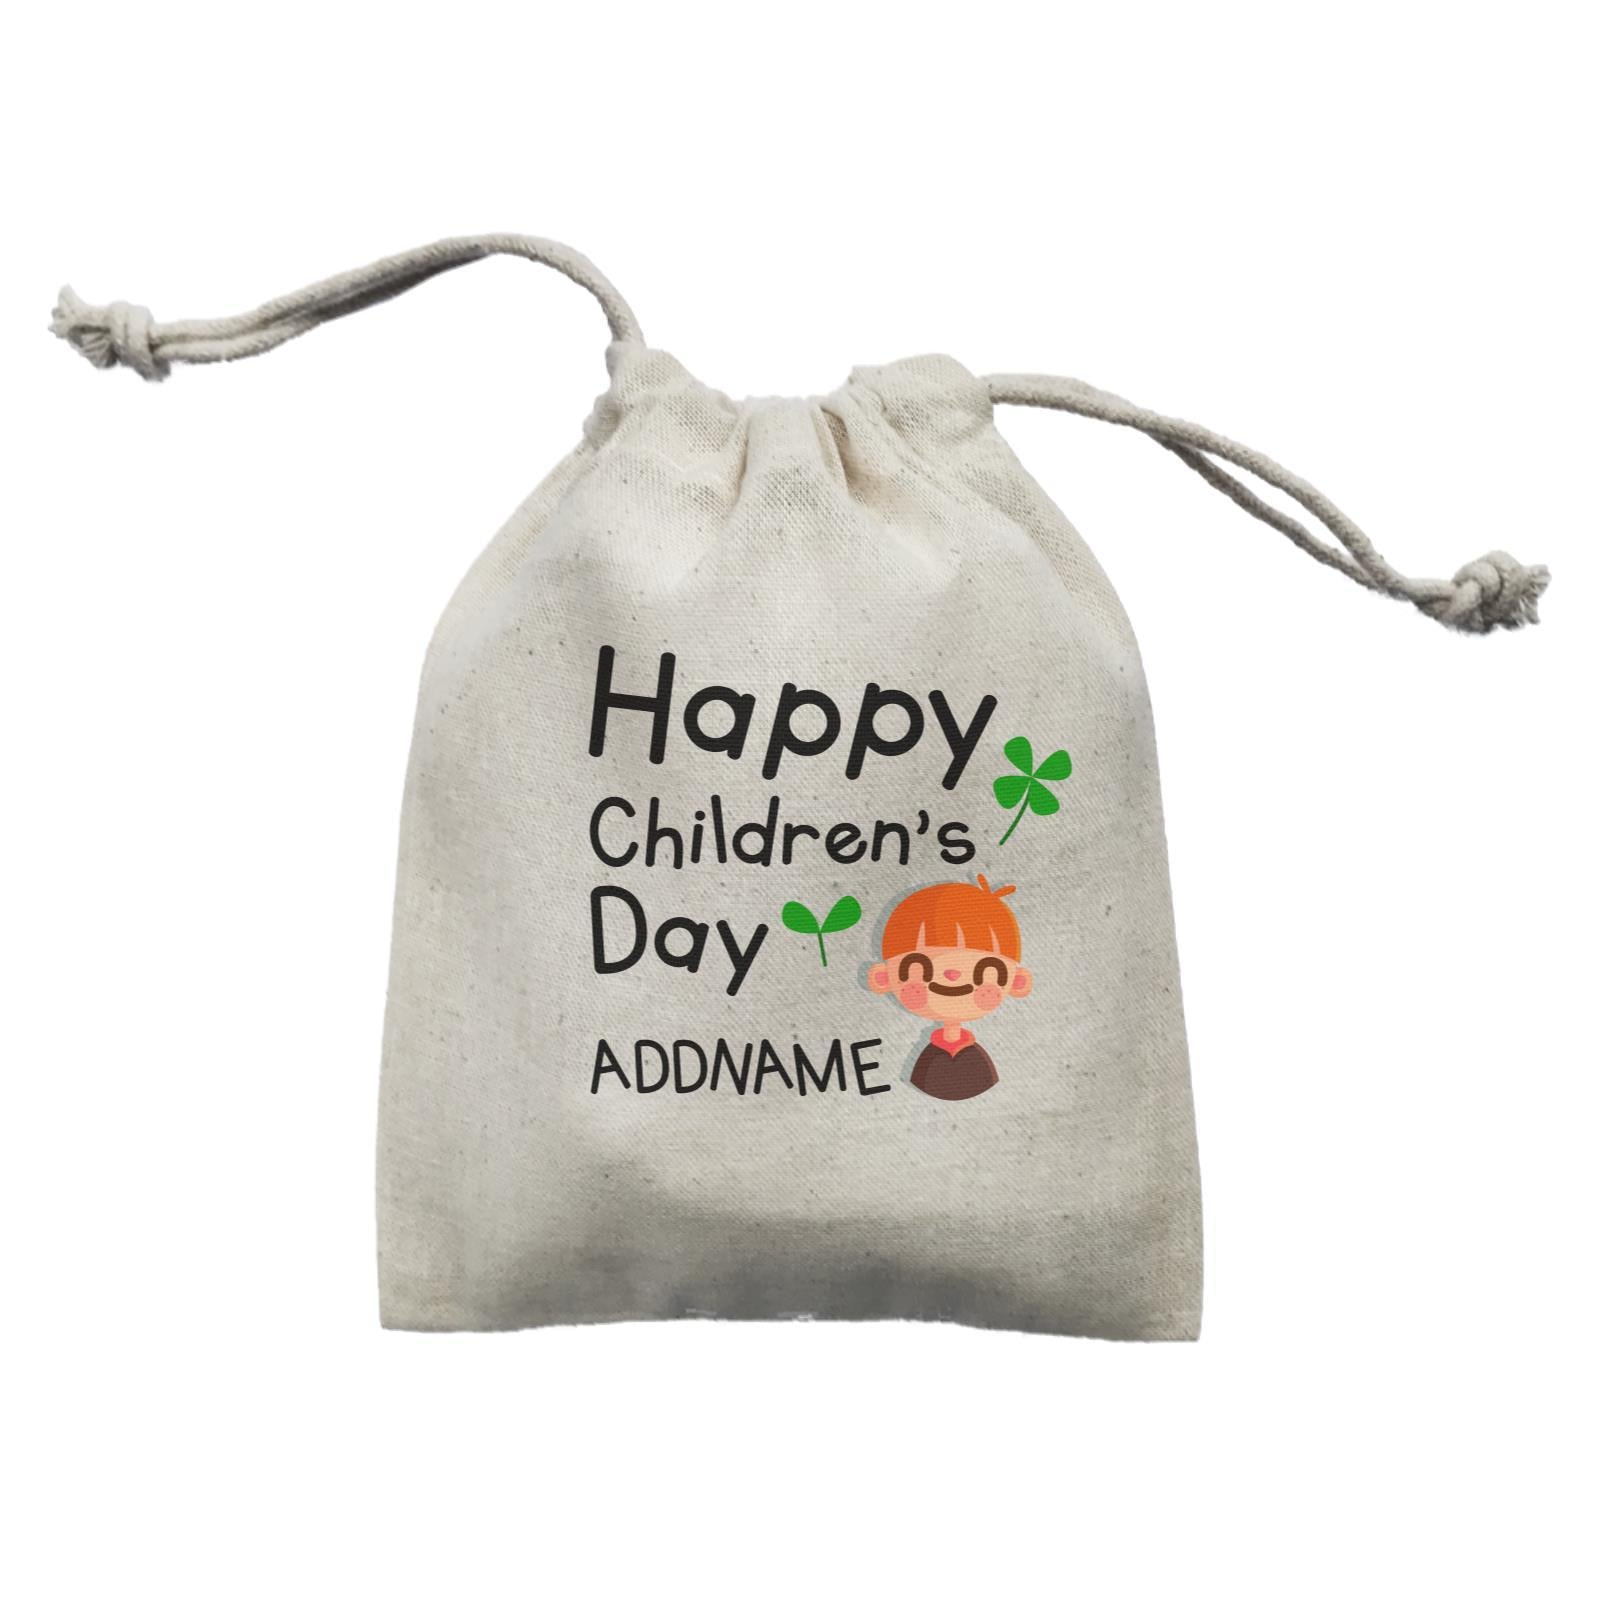 Children's Day Gift Series Happy Children's Day Cute Boy Addname  Mini Pouch